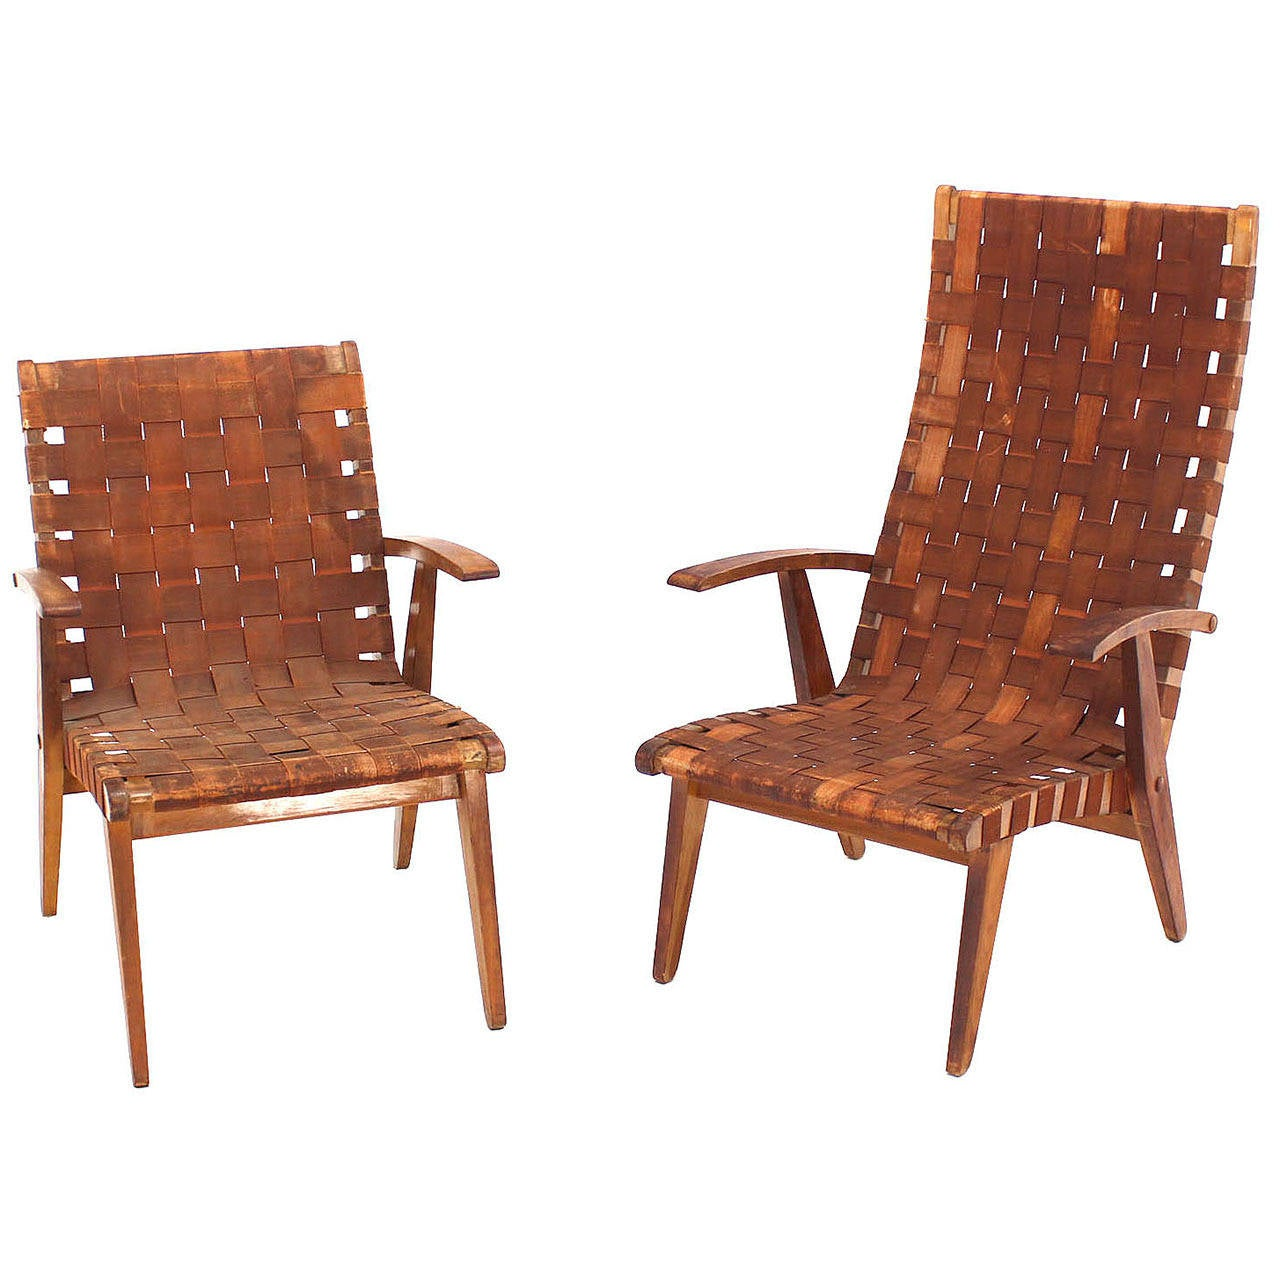 Non matching pair of early jens risom lounge chairs at 1stdibs for Matching lounge furniture